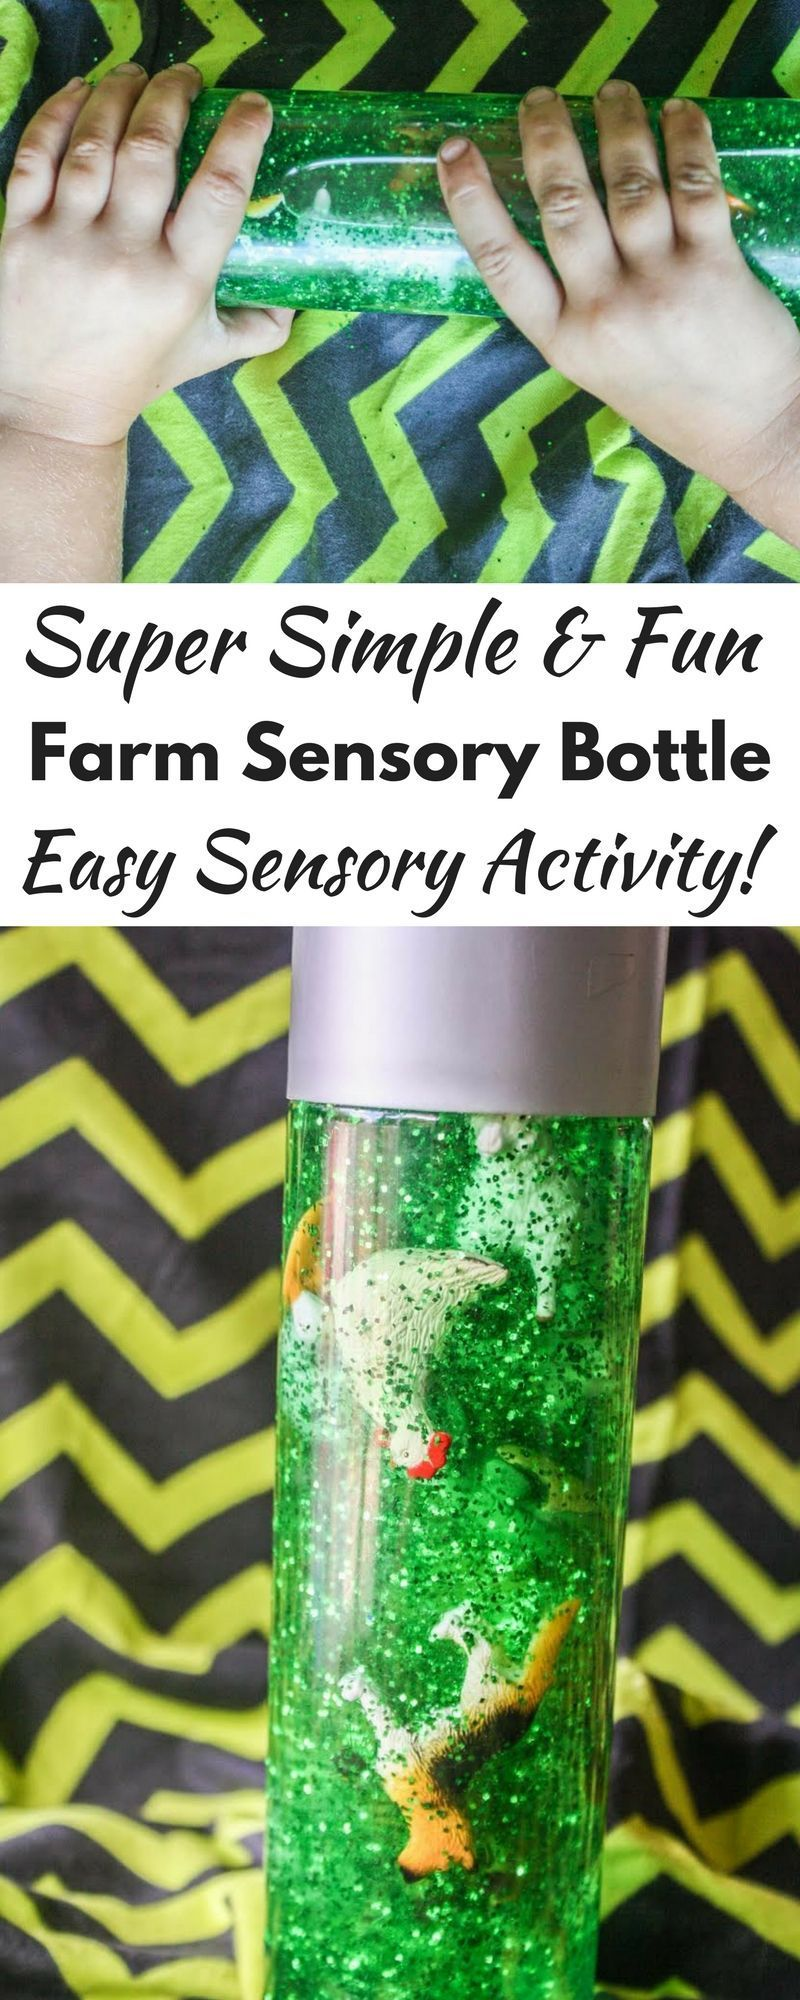 Super Simple and Fun I-Spy Farm Sensory Bottle #sensorythings Super Simple & Fun Farm Sensory Bottle! A Fun Sensory Activity for Preschoolers!fr #sensorybottles Super Simple and Fun I-Spy Farm Sensory Bottle #sensorythings Super Simple & Fun Farm Sensory Bottle! A Fun Sensory Activity for Preschoolers!fr #sensorybottles